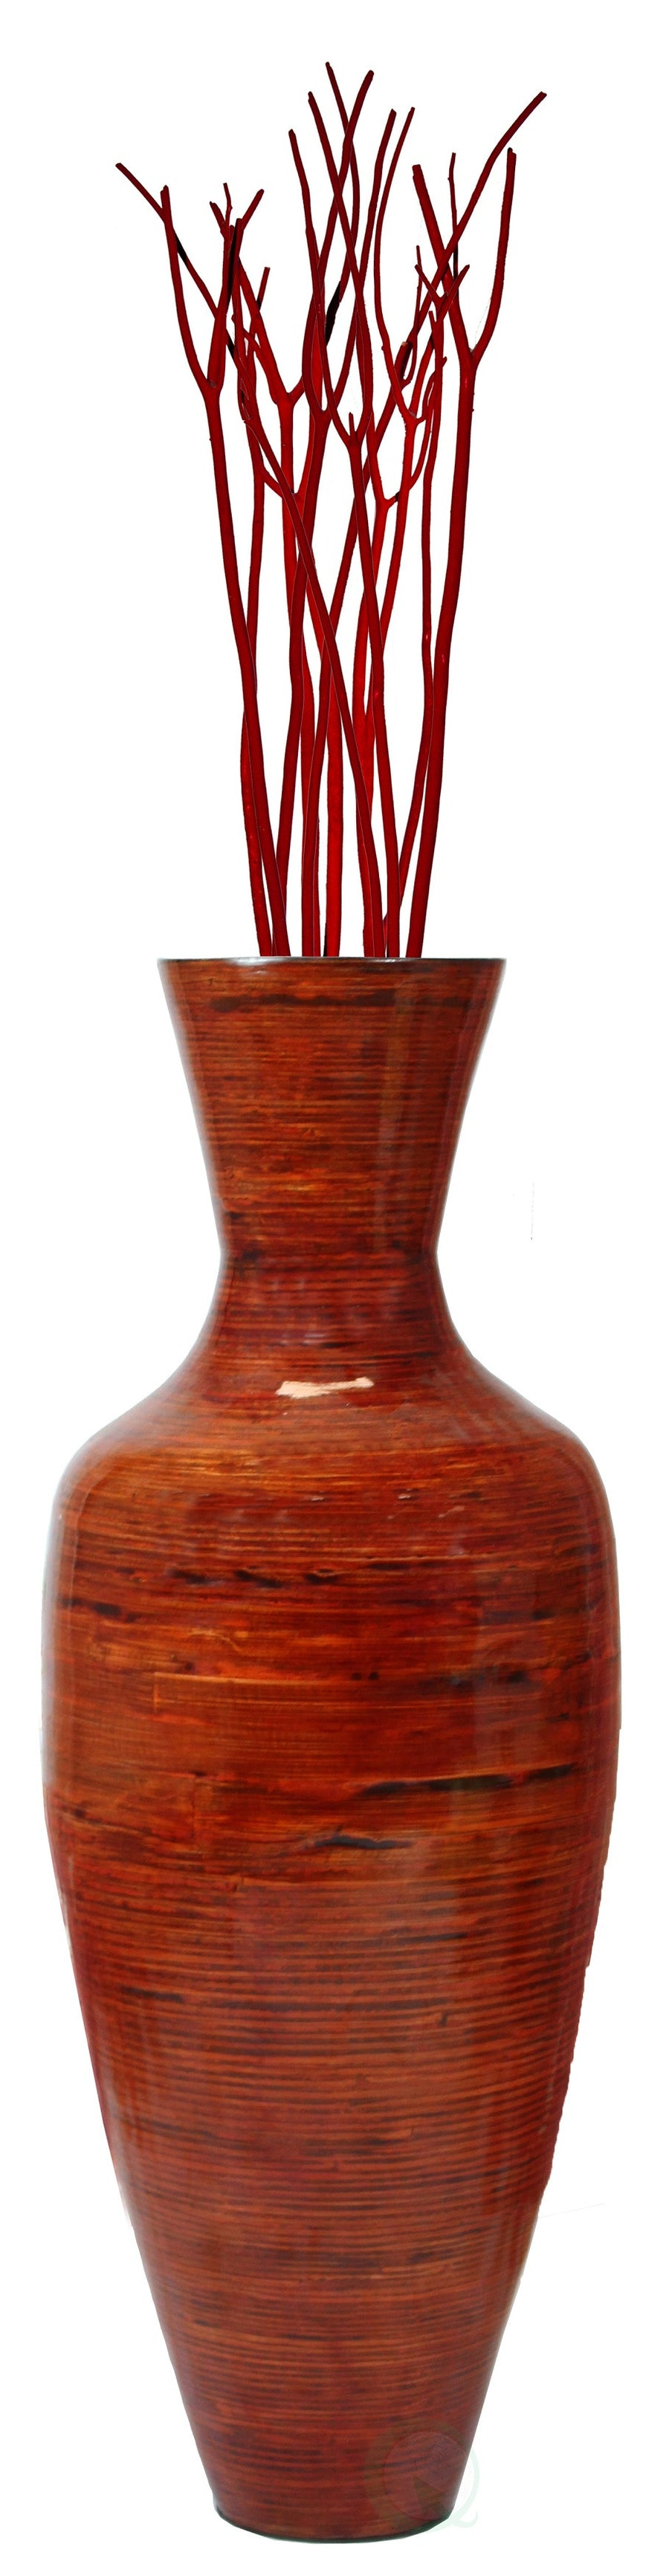 37.5 in. Tall Bamboo Floor Vase, Glossy Red